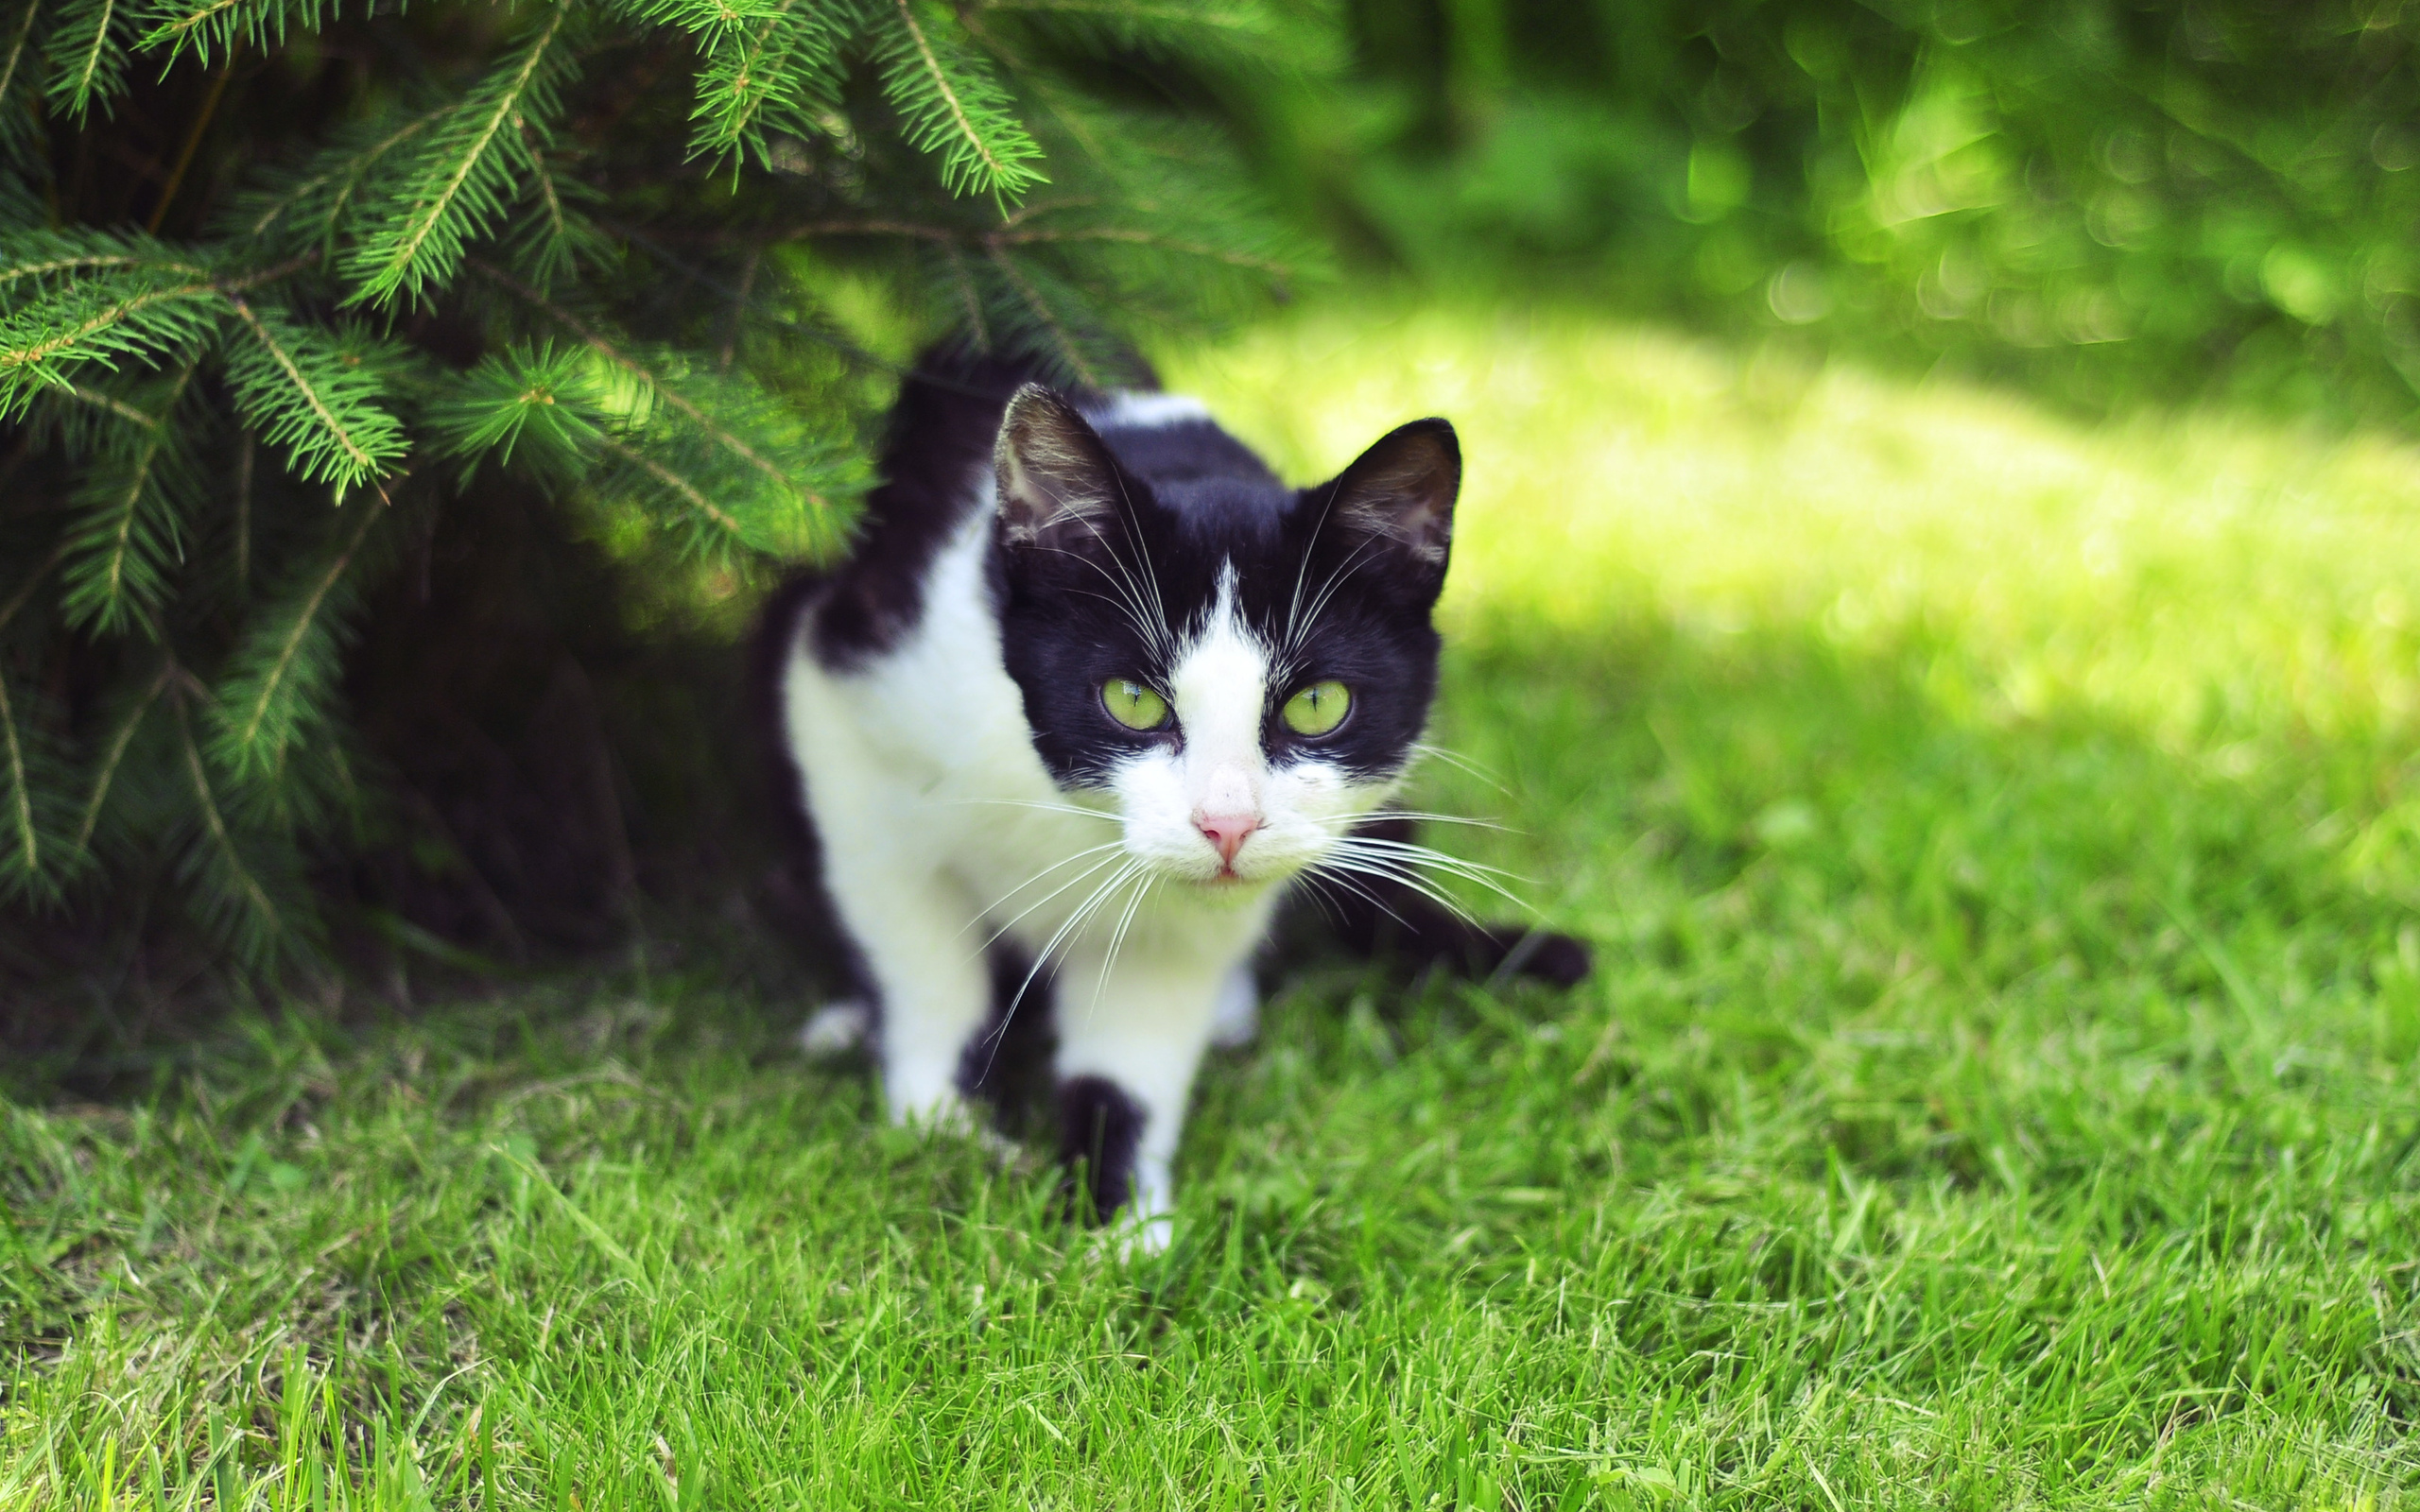 49637 download wallpaper Animals, Cats screensavers and pictures for free